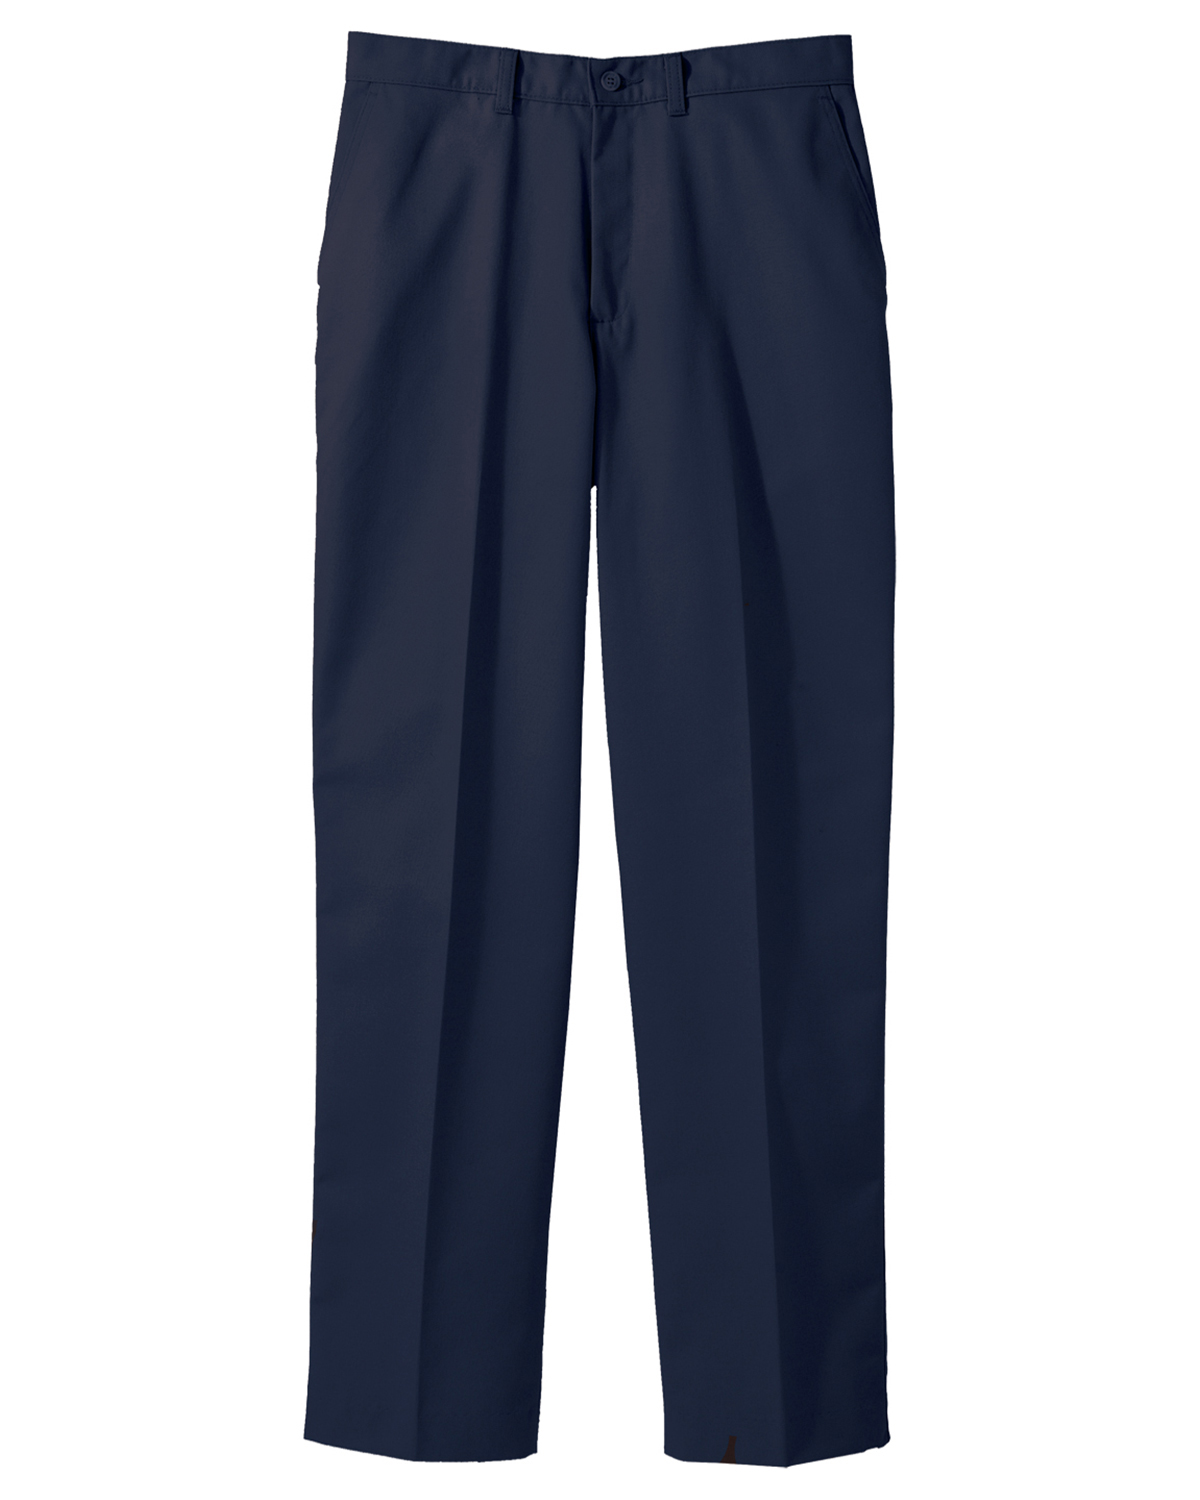 Edwards 2570 Men's Blended Chino Flat Front Zipper Pant at GotApparel